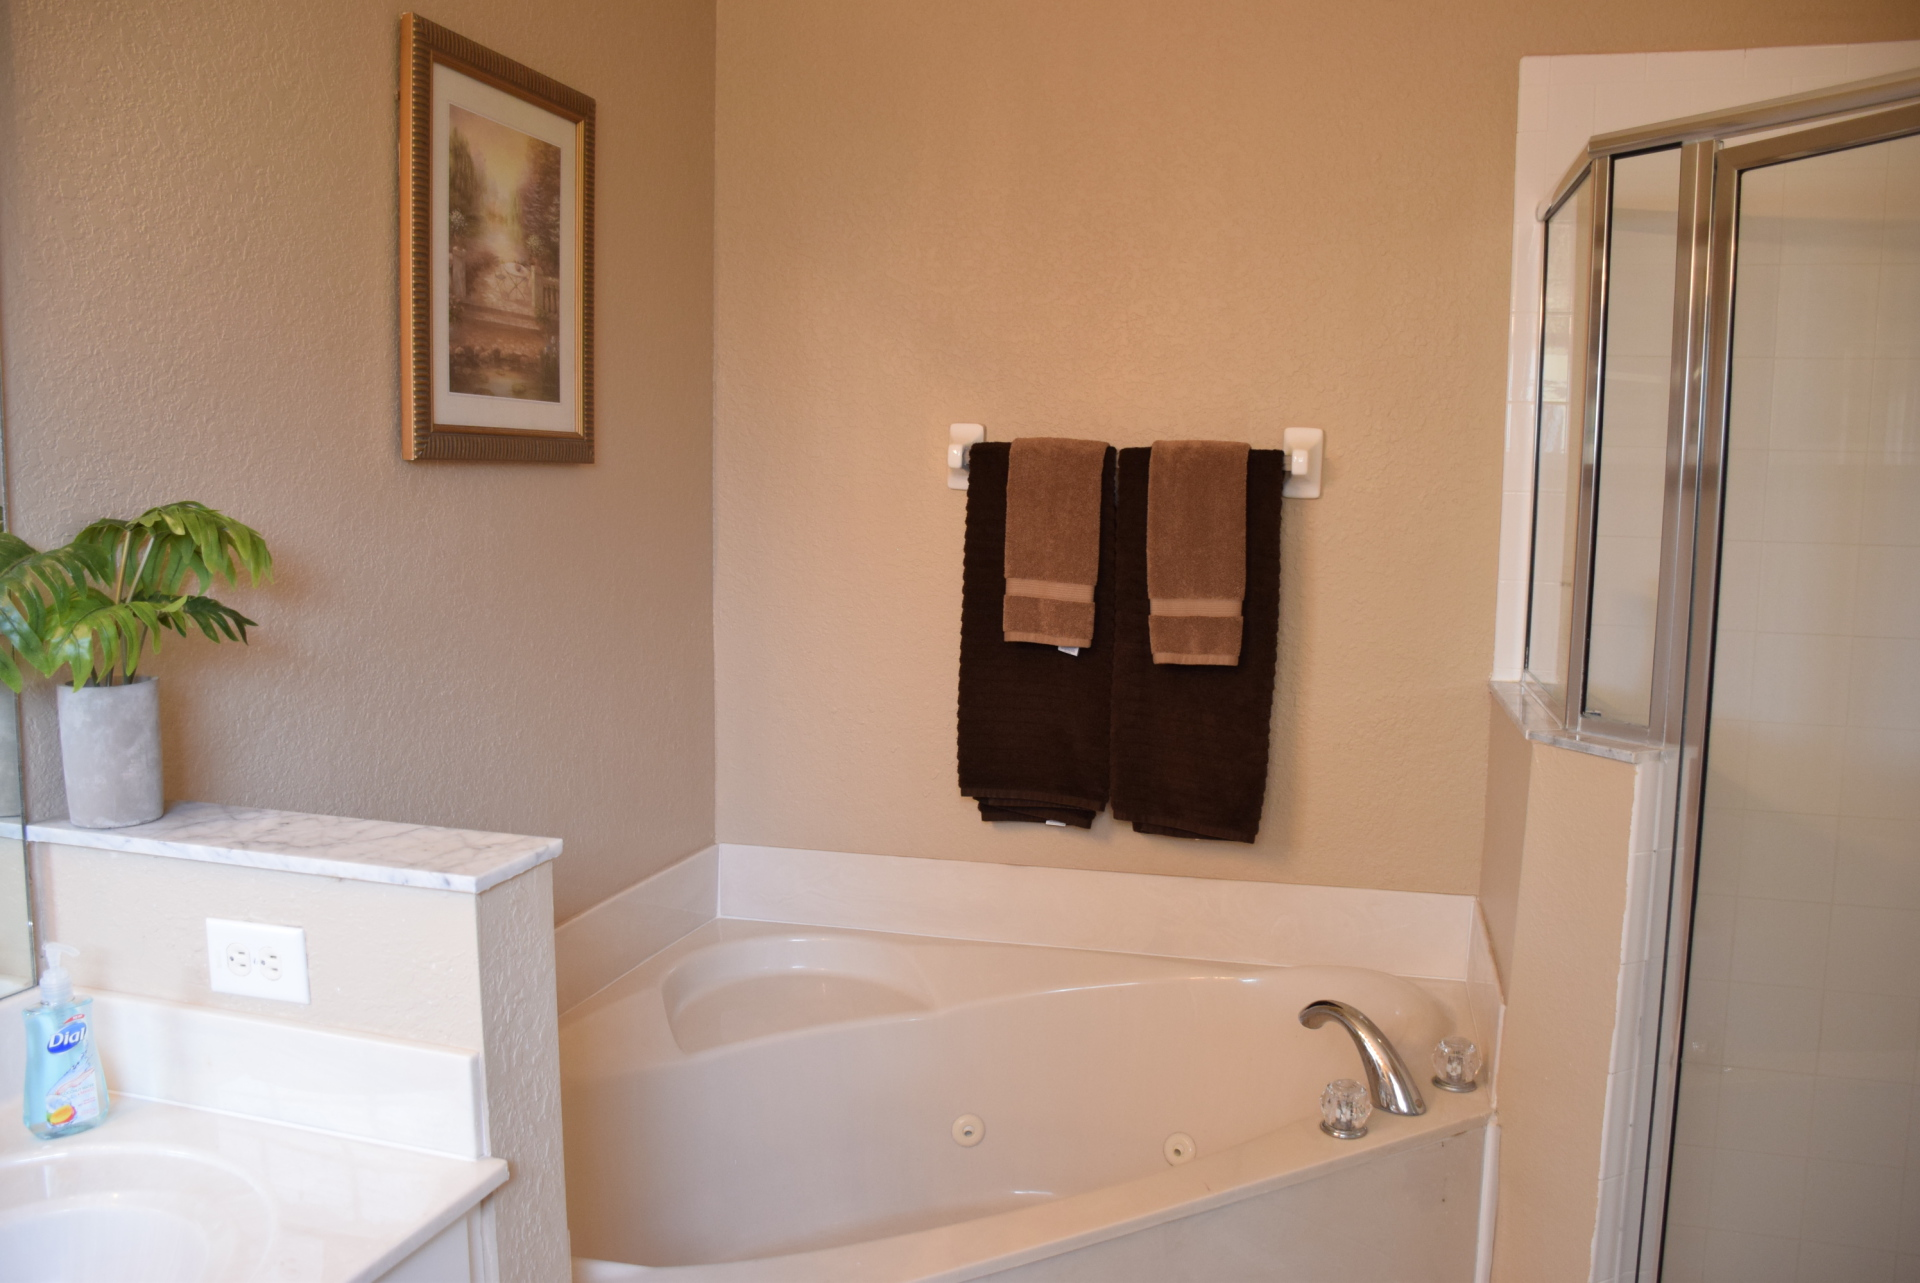 Master Ensuite Bathroom. Jacuzzi Garden Tub & Shower Stall